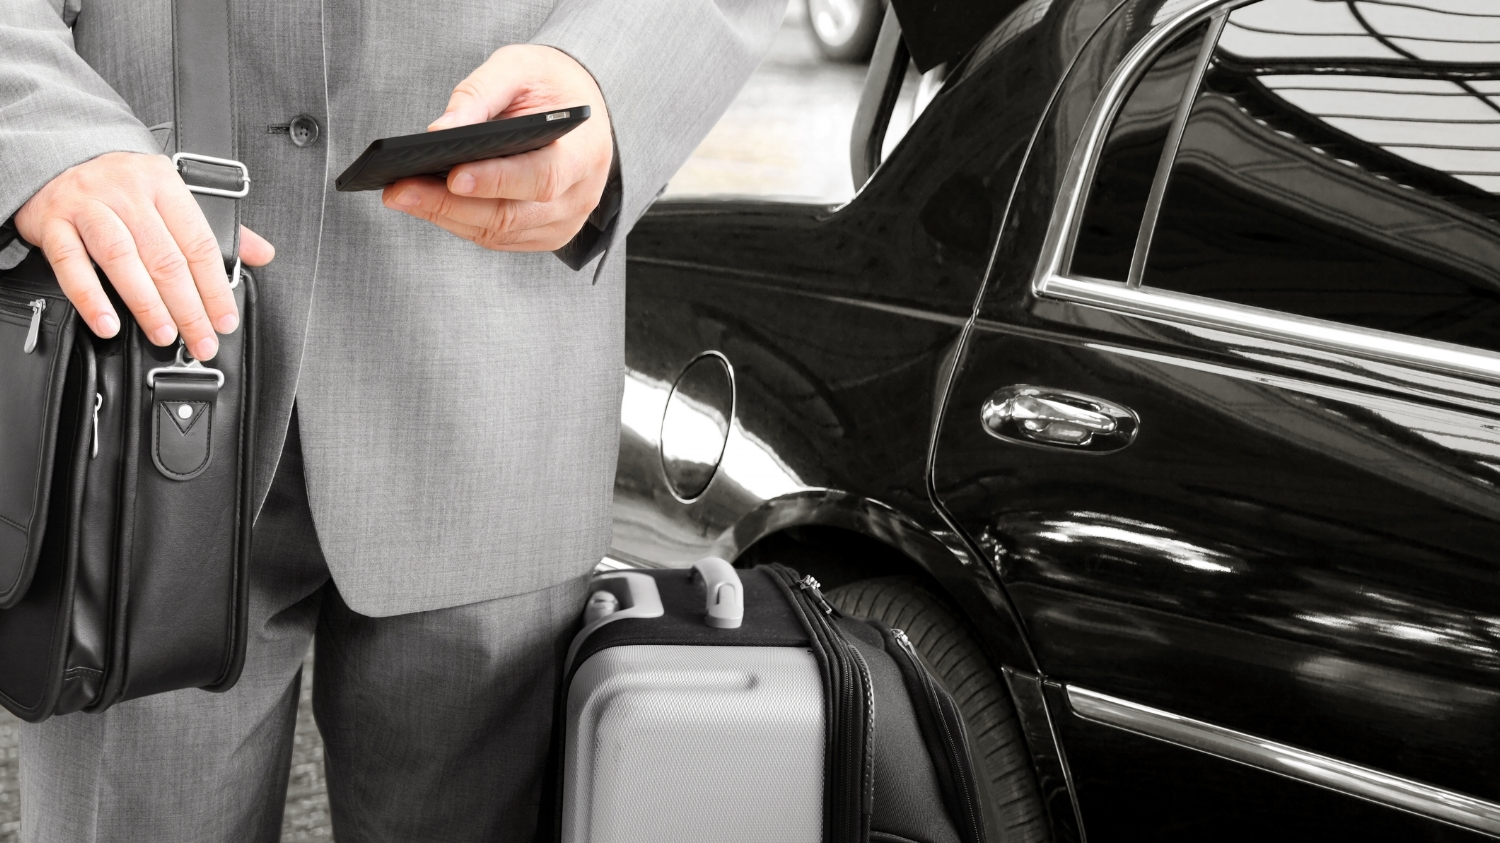 Corporate travel and events - Managing your event from transport to locations, accomodation, bookings, entertainment and more